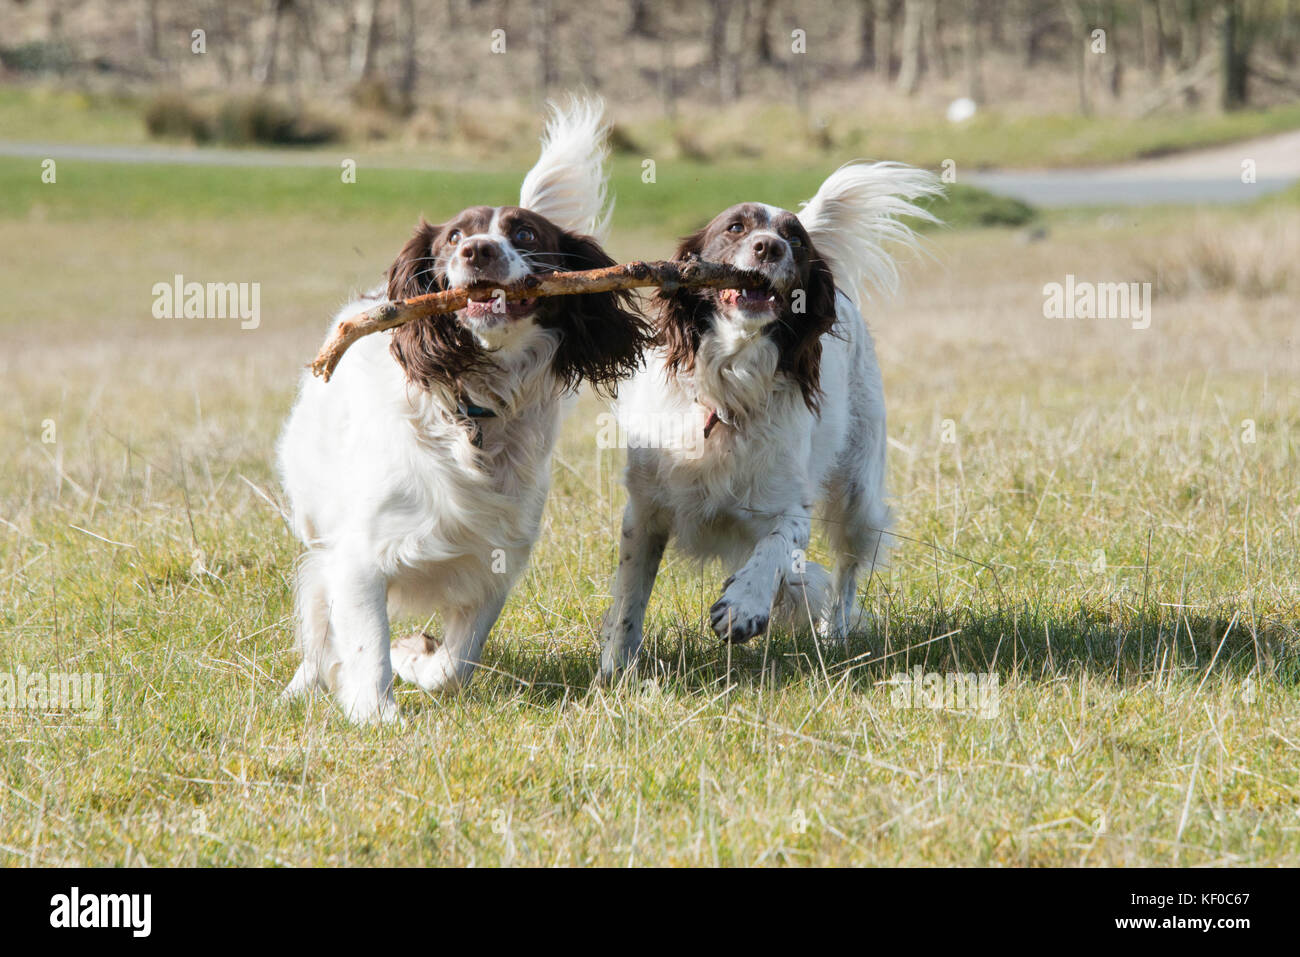 Playful springer spaniels carrying a stick during a walk through fields in the UK - Stock Image